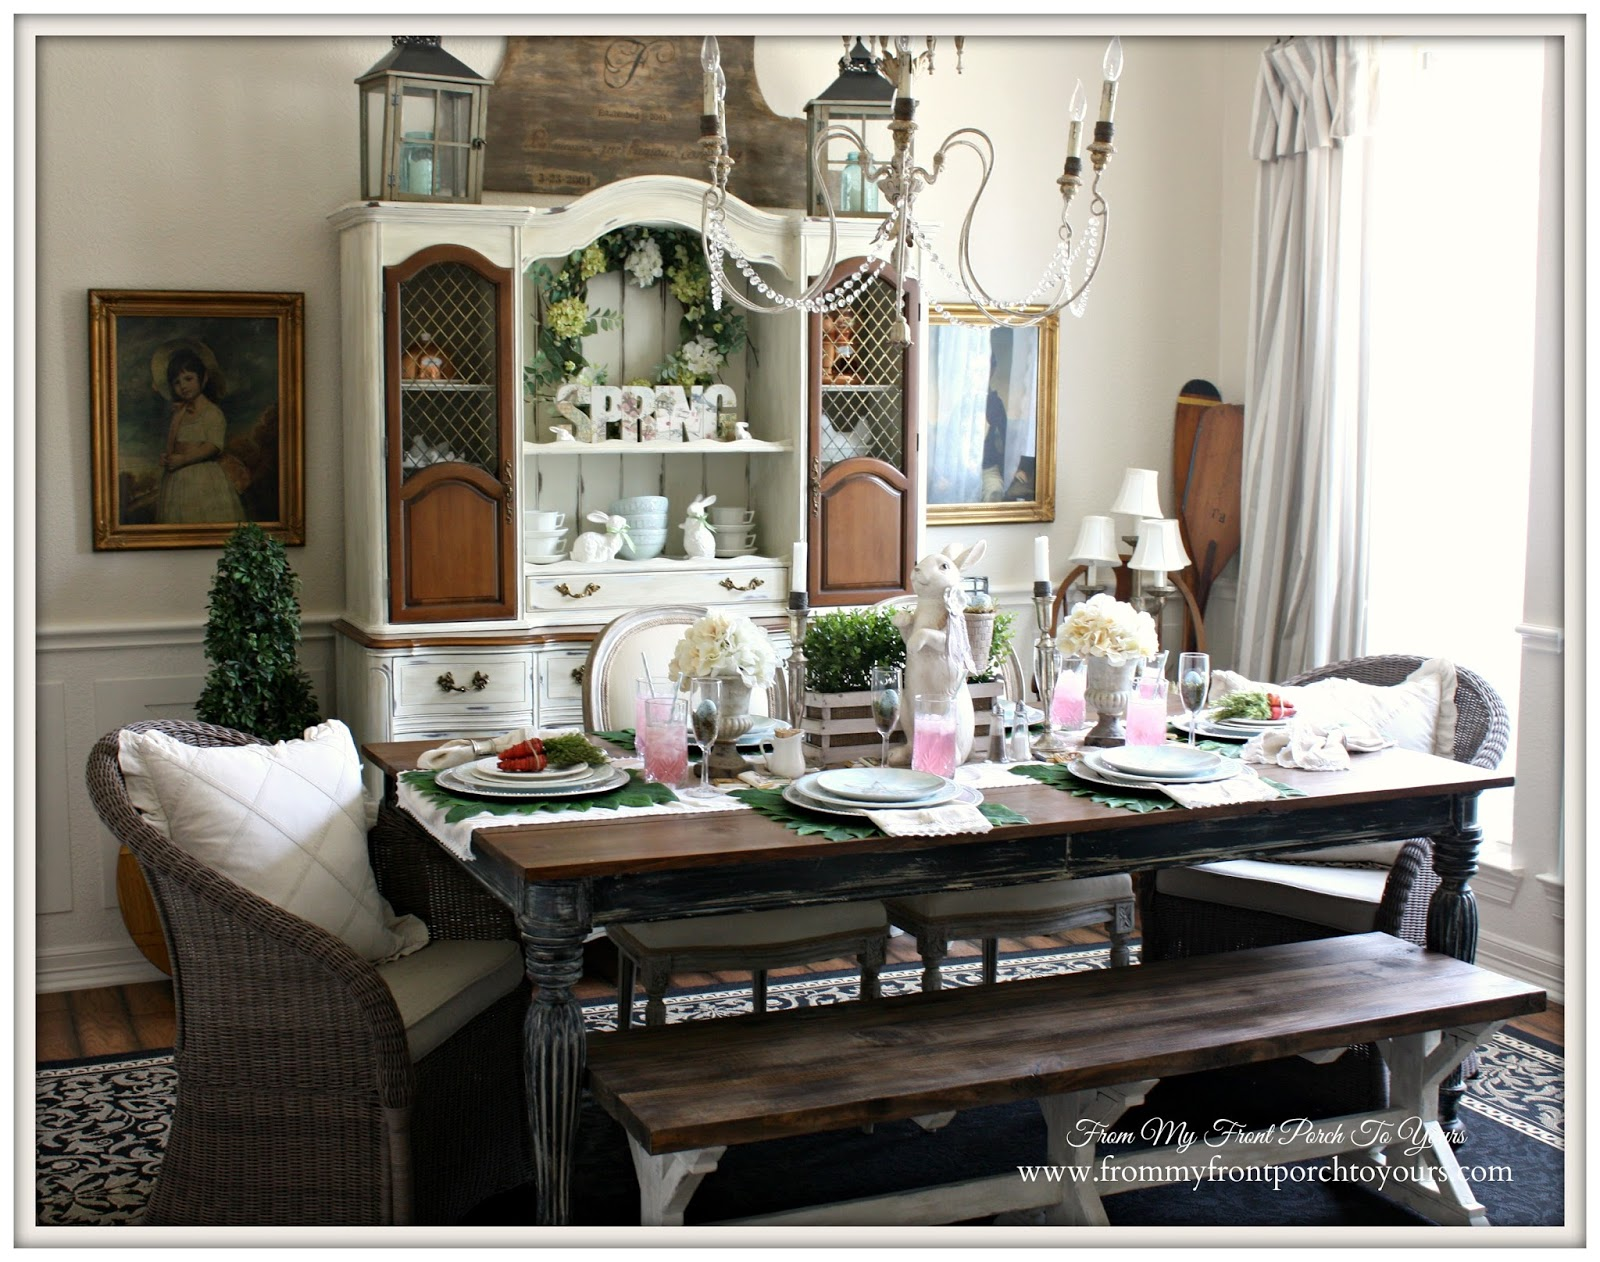 French Farmhouse Easter Dining Room-Two Tone Hutch- From My Front Porch To Yours